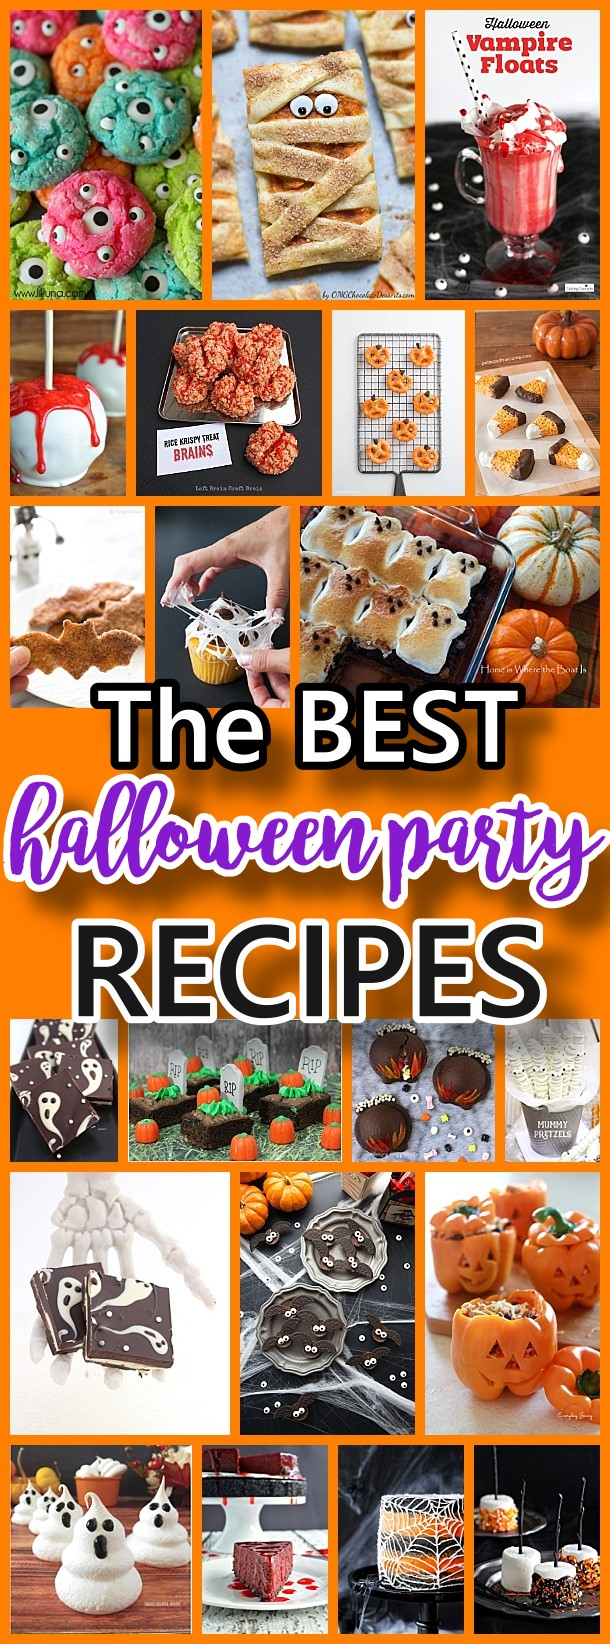 THE BEST Halloween Party Treats Appetizers and Desserts Recipes #halloween #halloweenrecipes